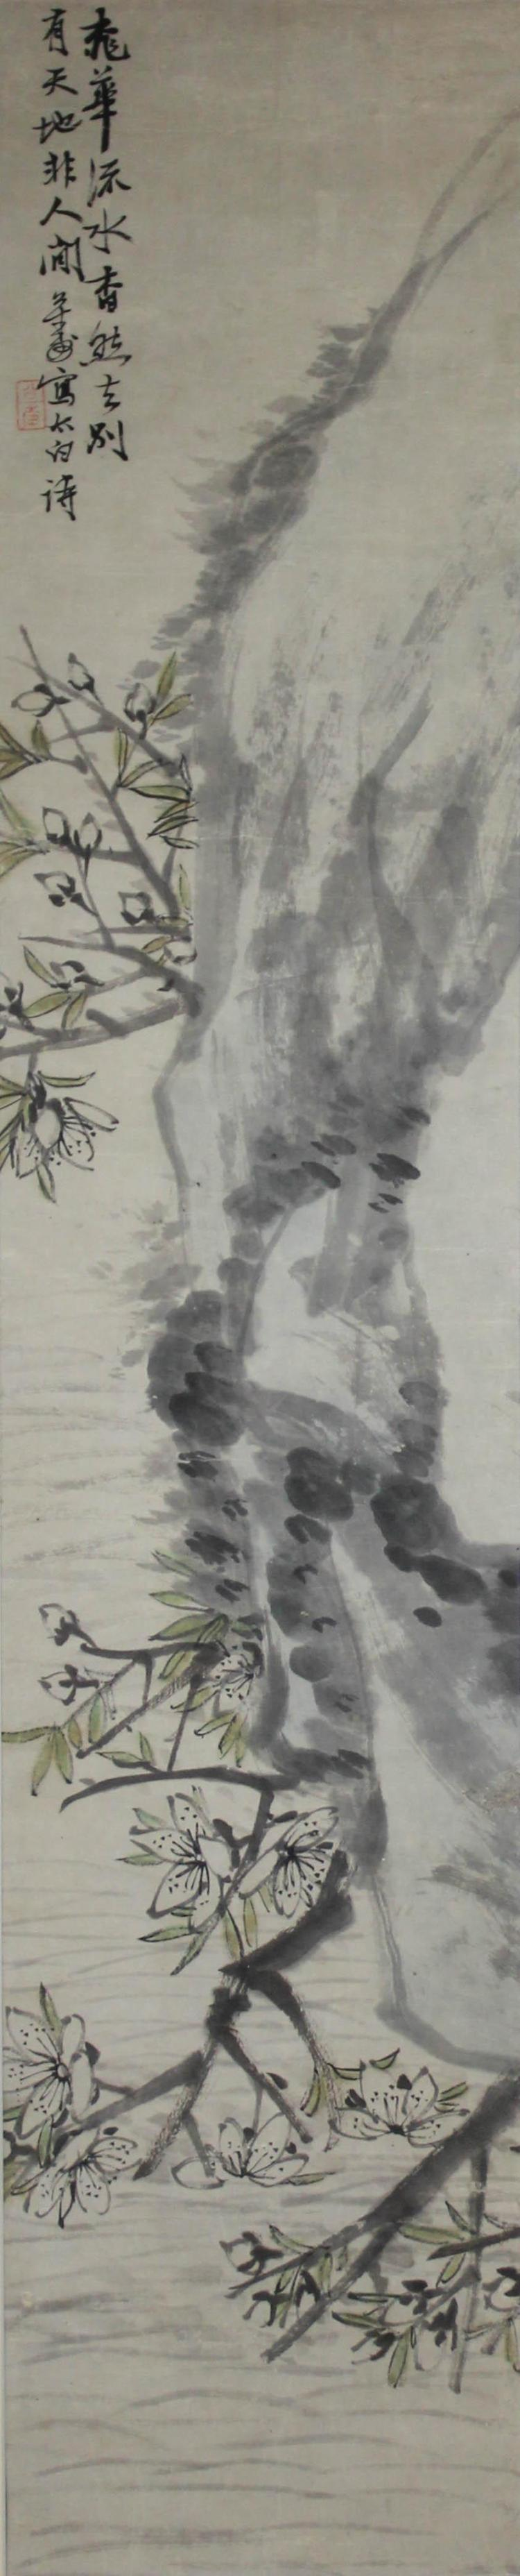 HU GONGSHOU (CHINESE, 1823-1886) PEACH BLOSSOM Ink on paper: 39 x 8 in. (sight)